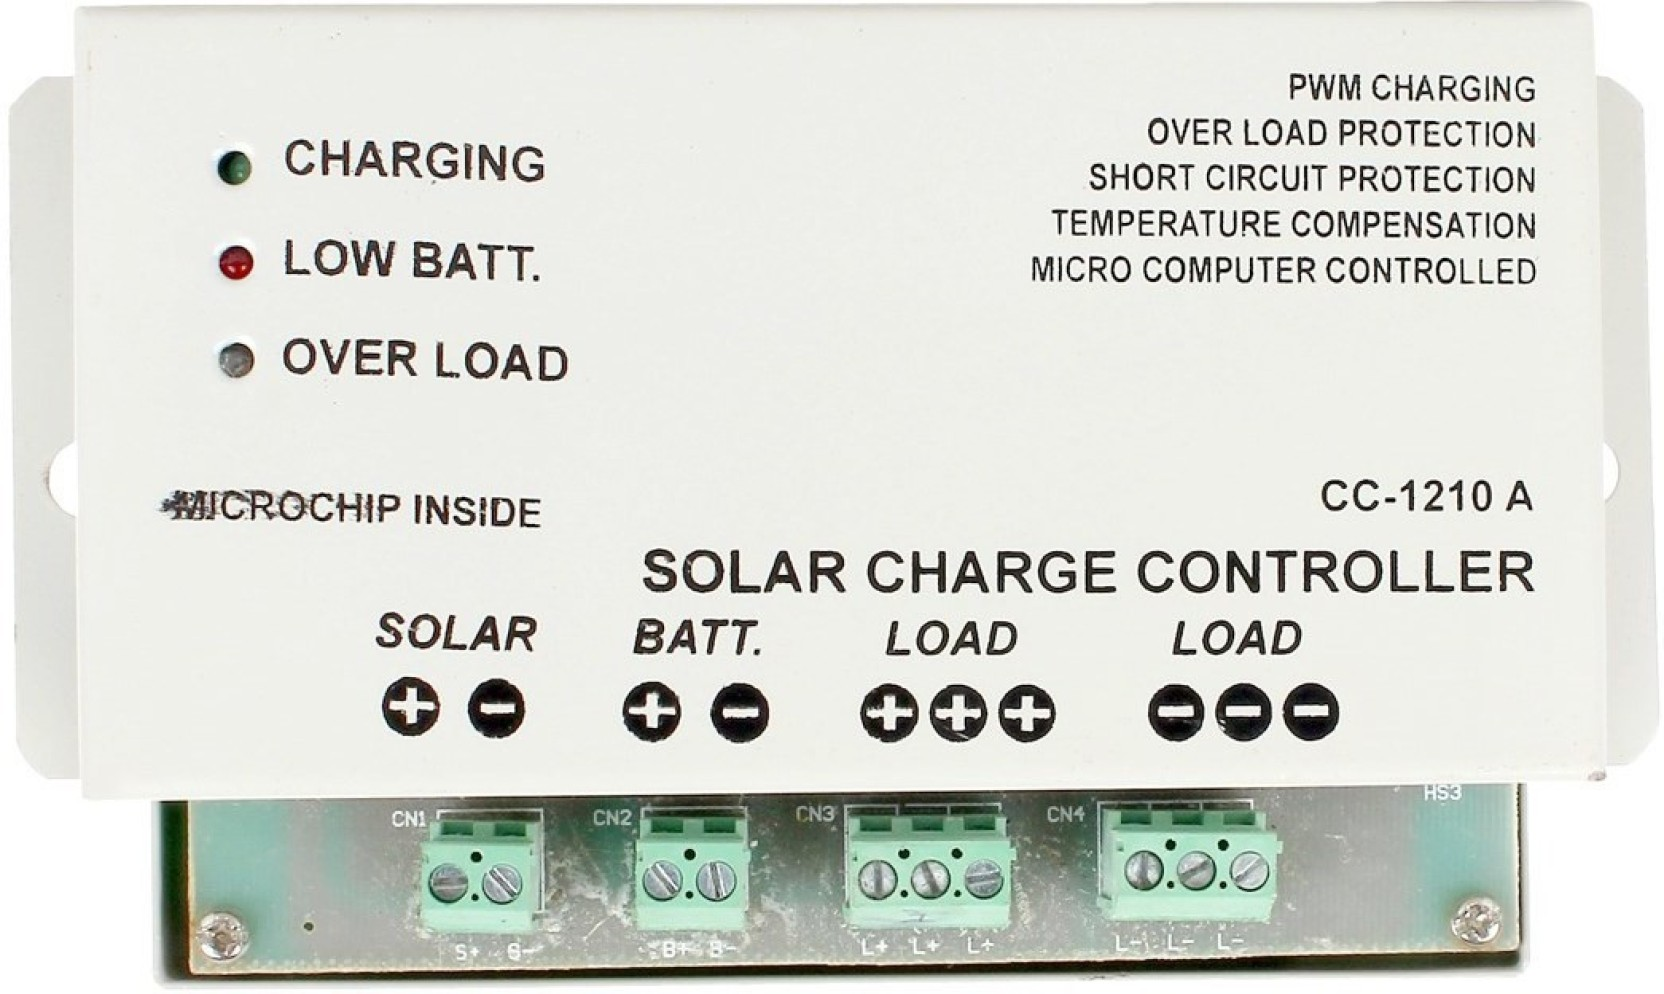 Fos 12v 10a Microcontroller Based Pwm Solar Charge Controller Circuit Working With Add To Cart